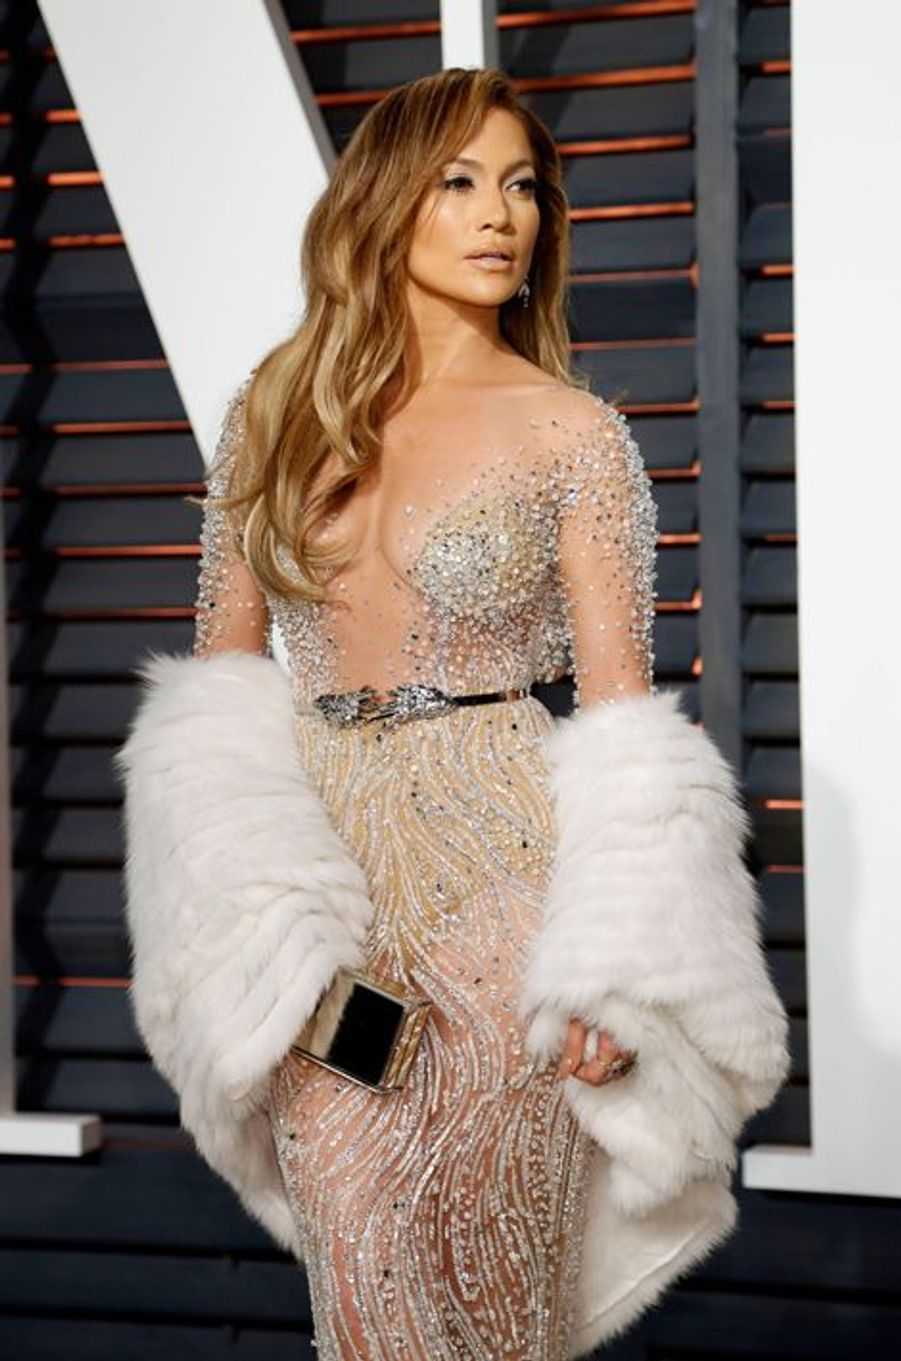 11 - Jennifer Lopez est suivie par plus de 31 millions de followers